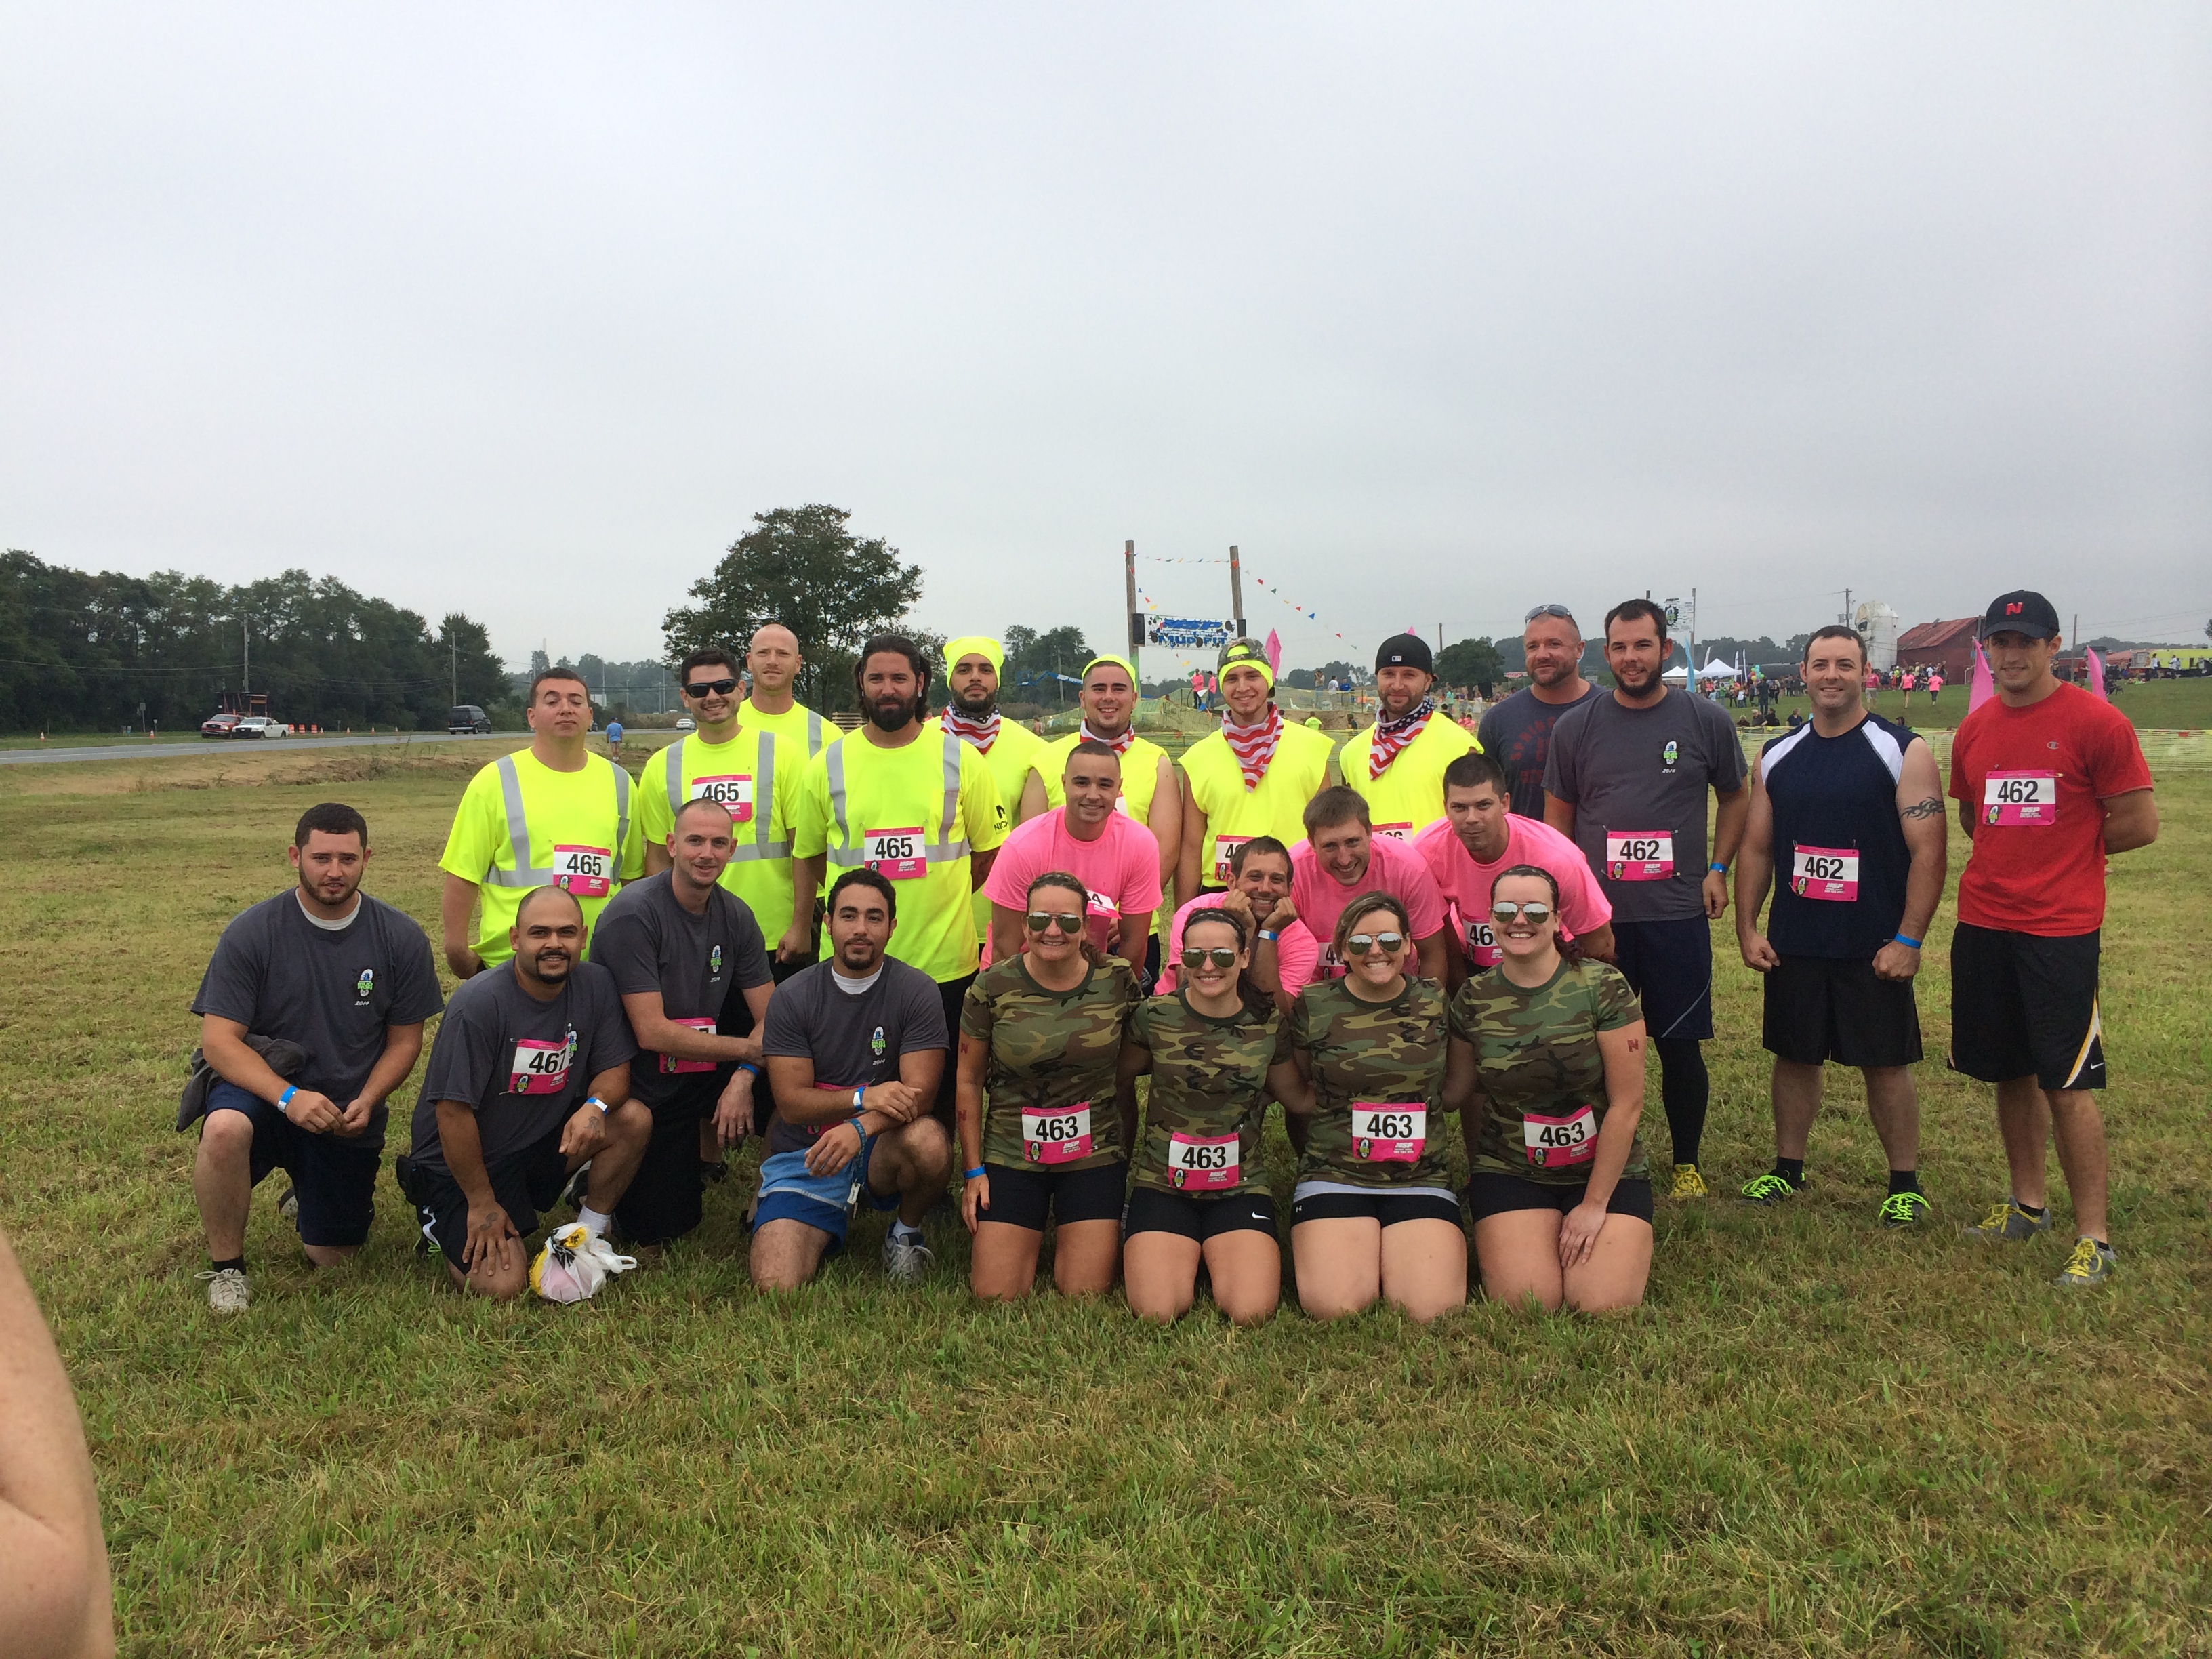 Delaware Mud Run – Nickle employees raise more than $4,000